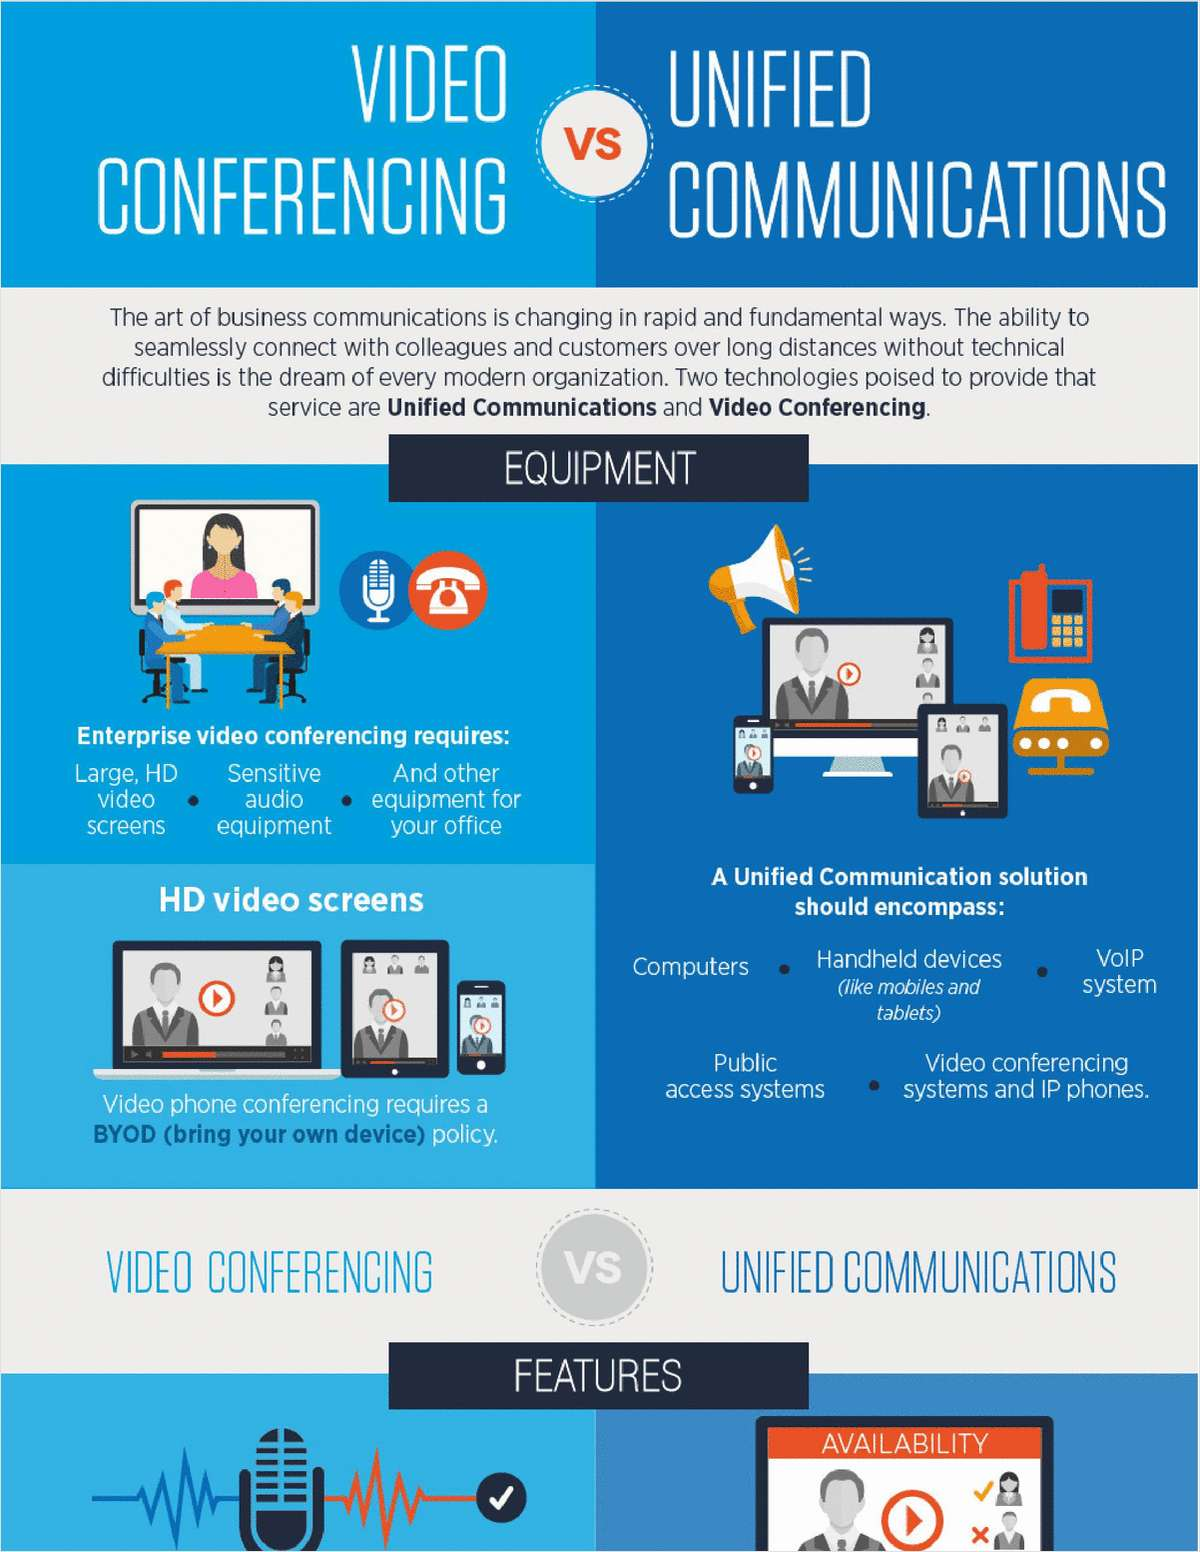 Unified Communications or Video Conferencing?